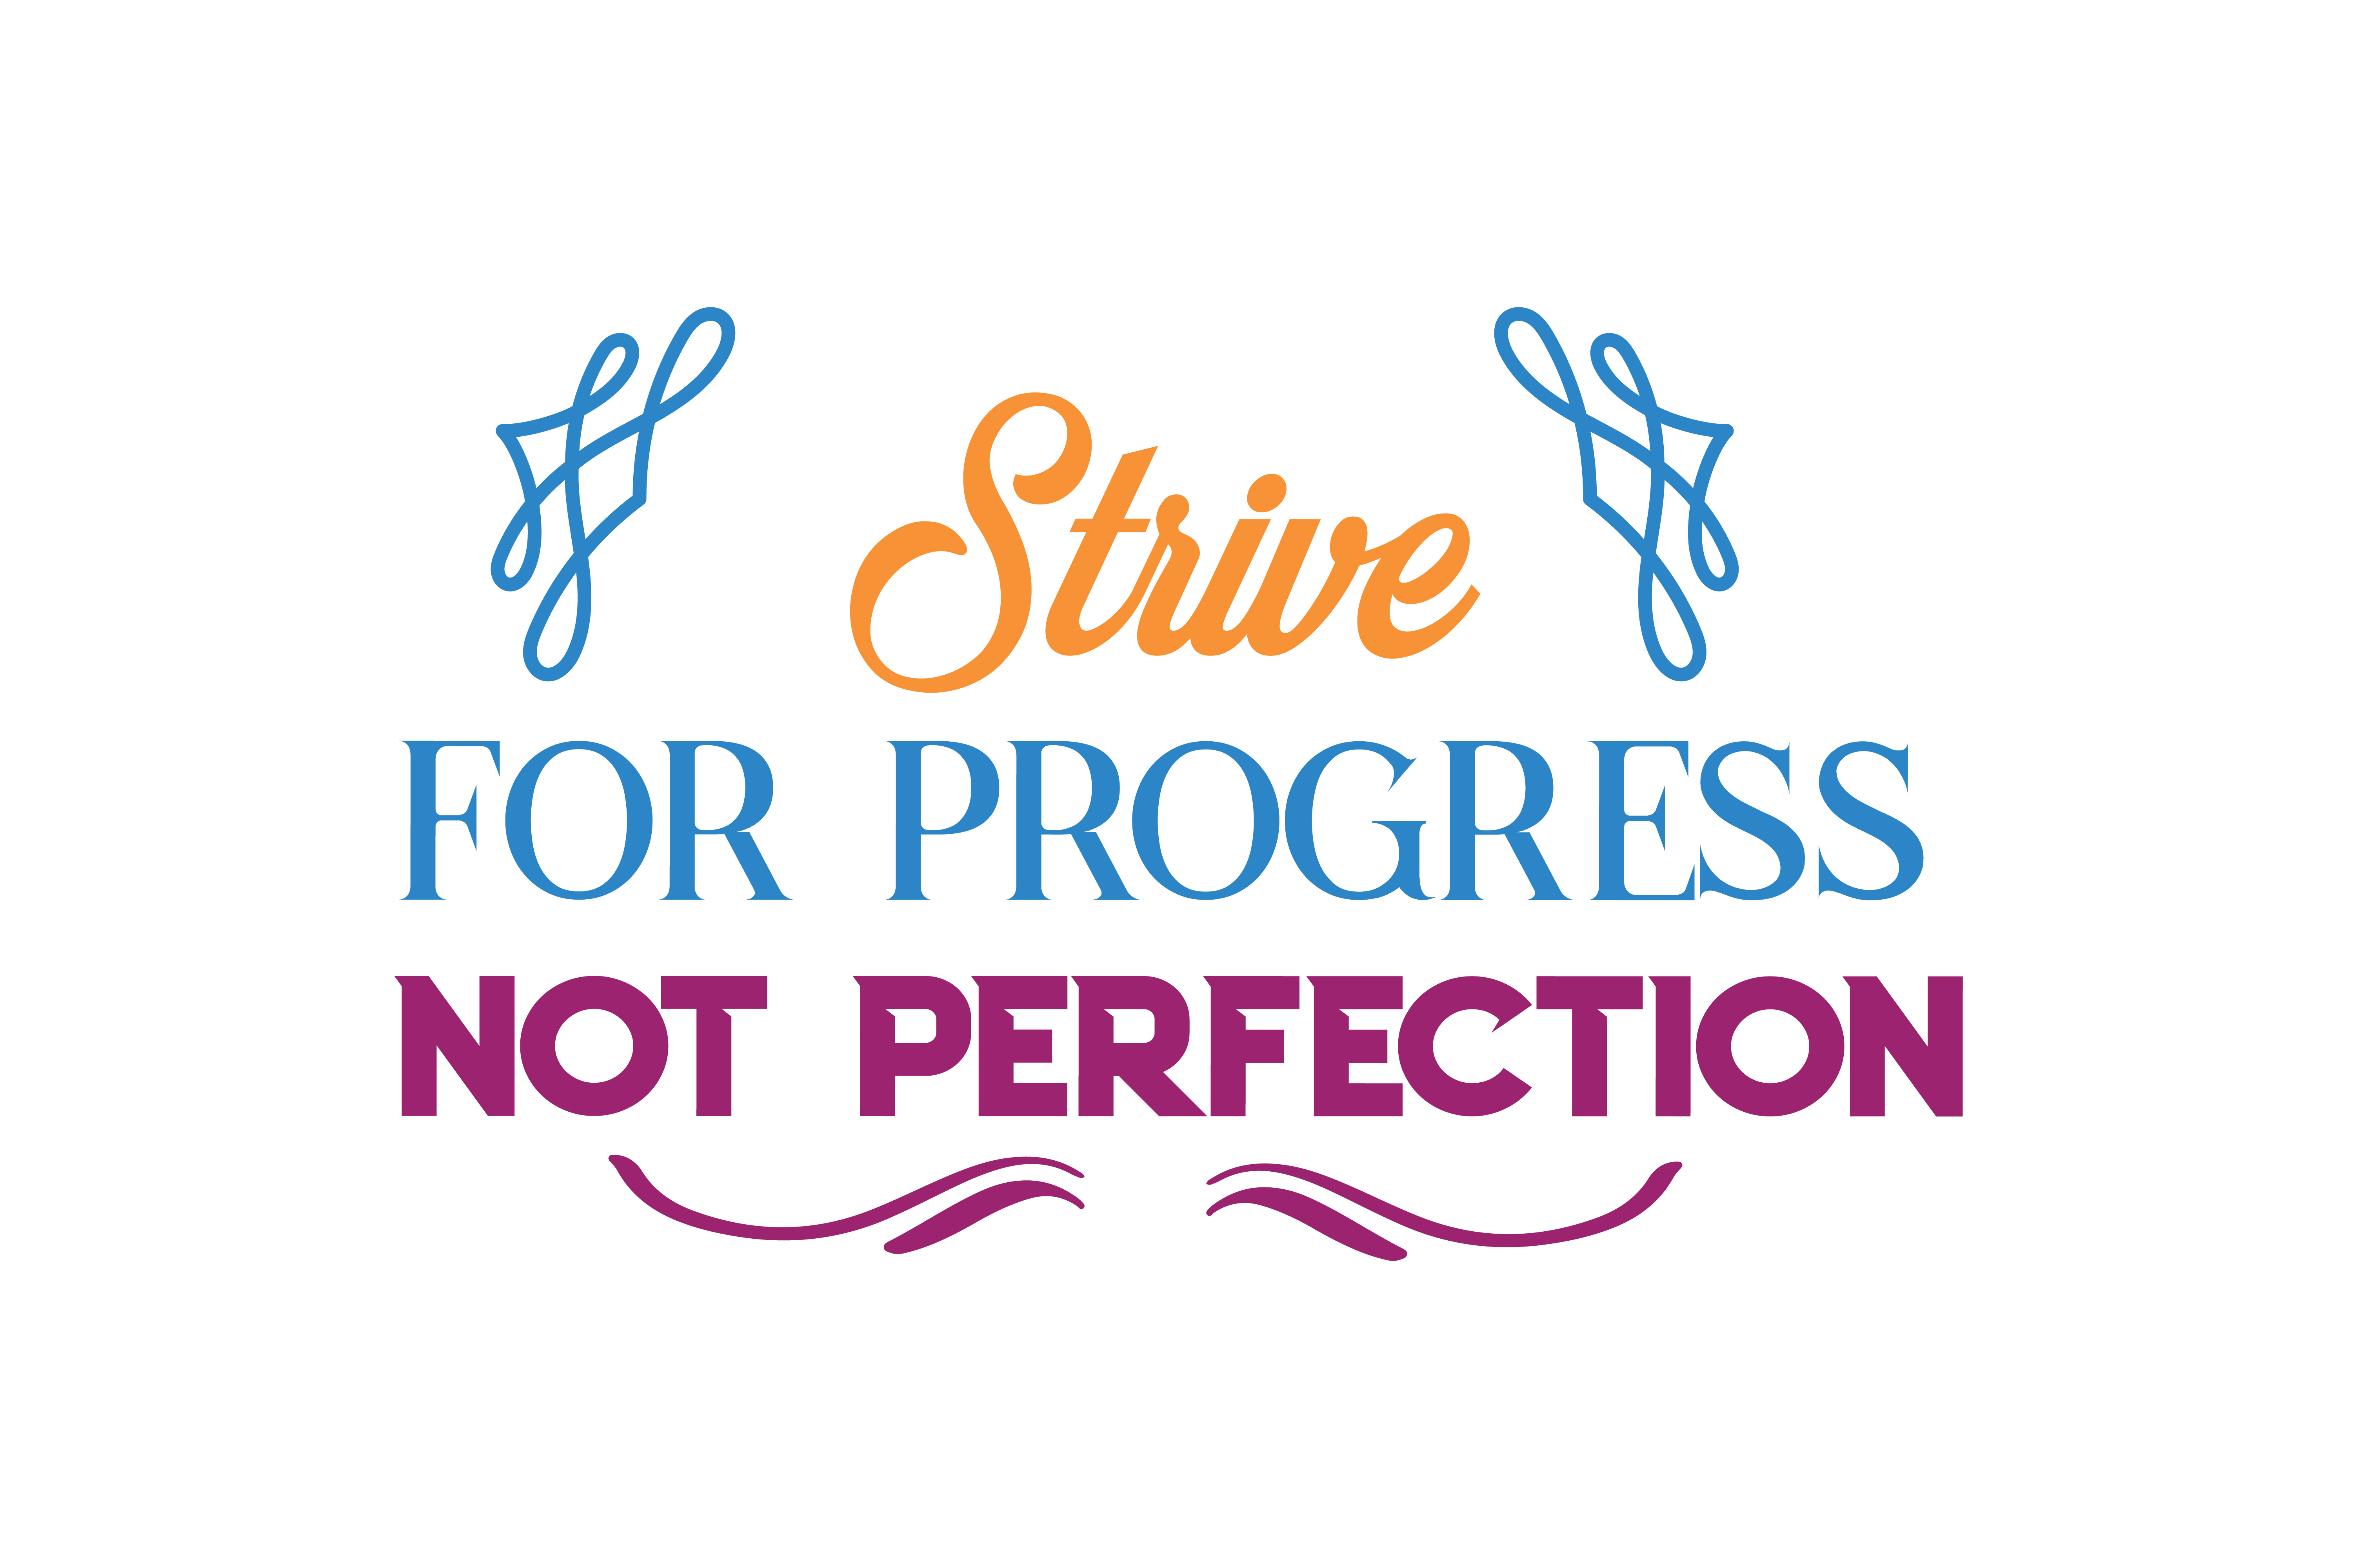 Download Free Strive For Progress Not Perfection Quote Svg Cut Graphic By for Cricut Explore, Silhouette and other cutting machines.